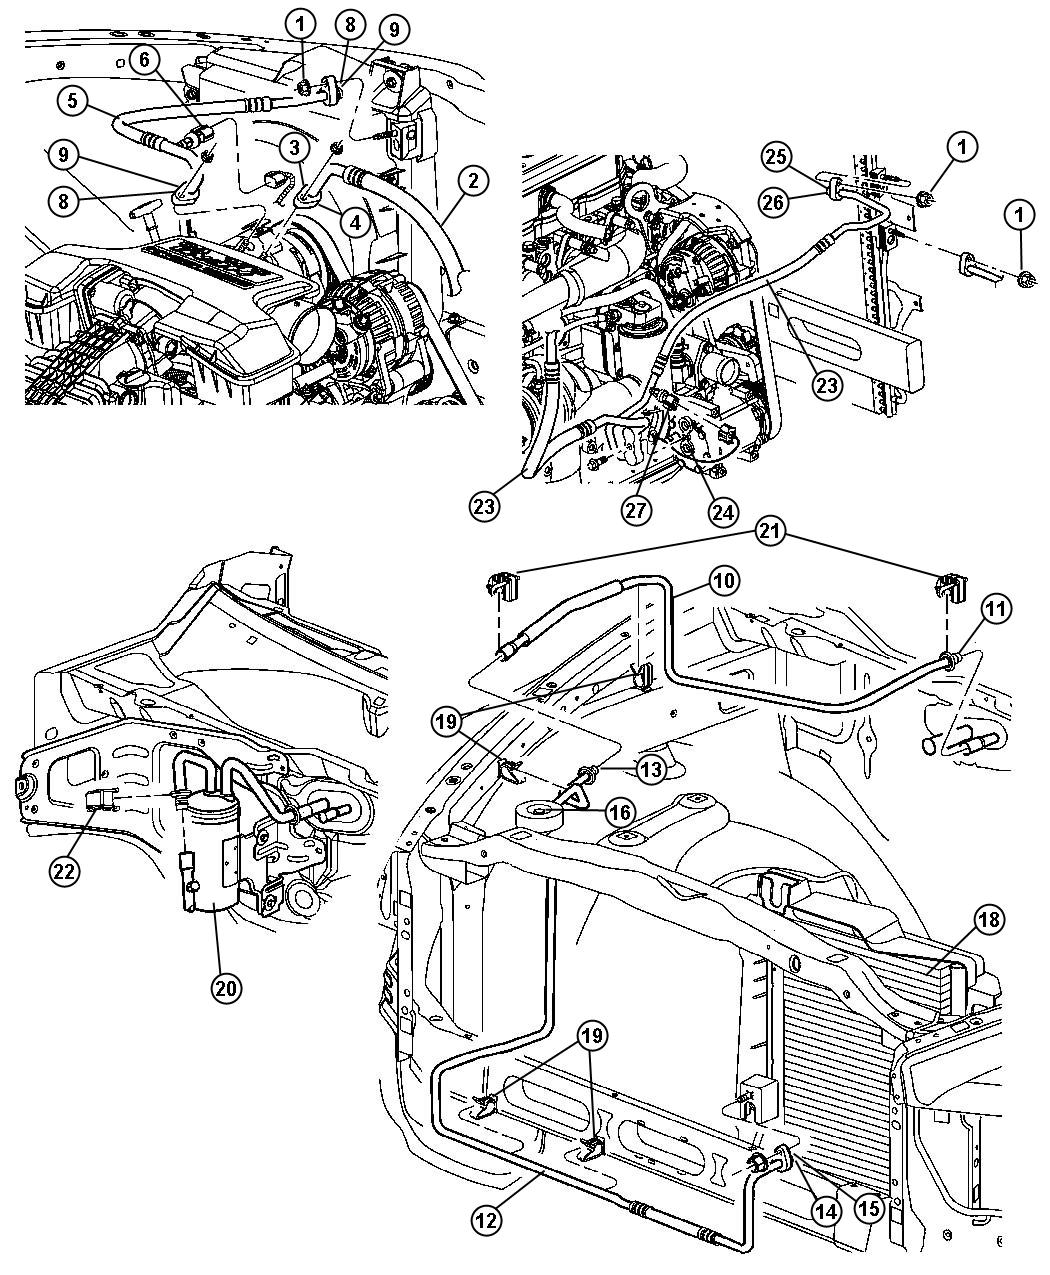 Dodge Ram 3500 Line  Used For  A  C Suction And Discharge